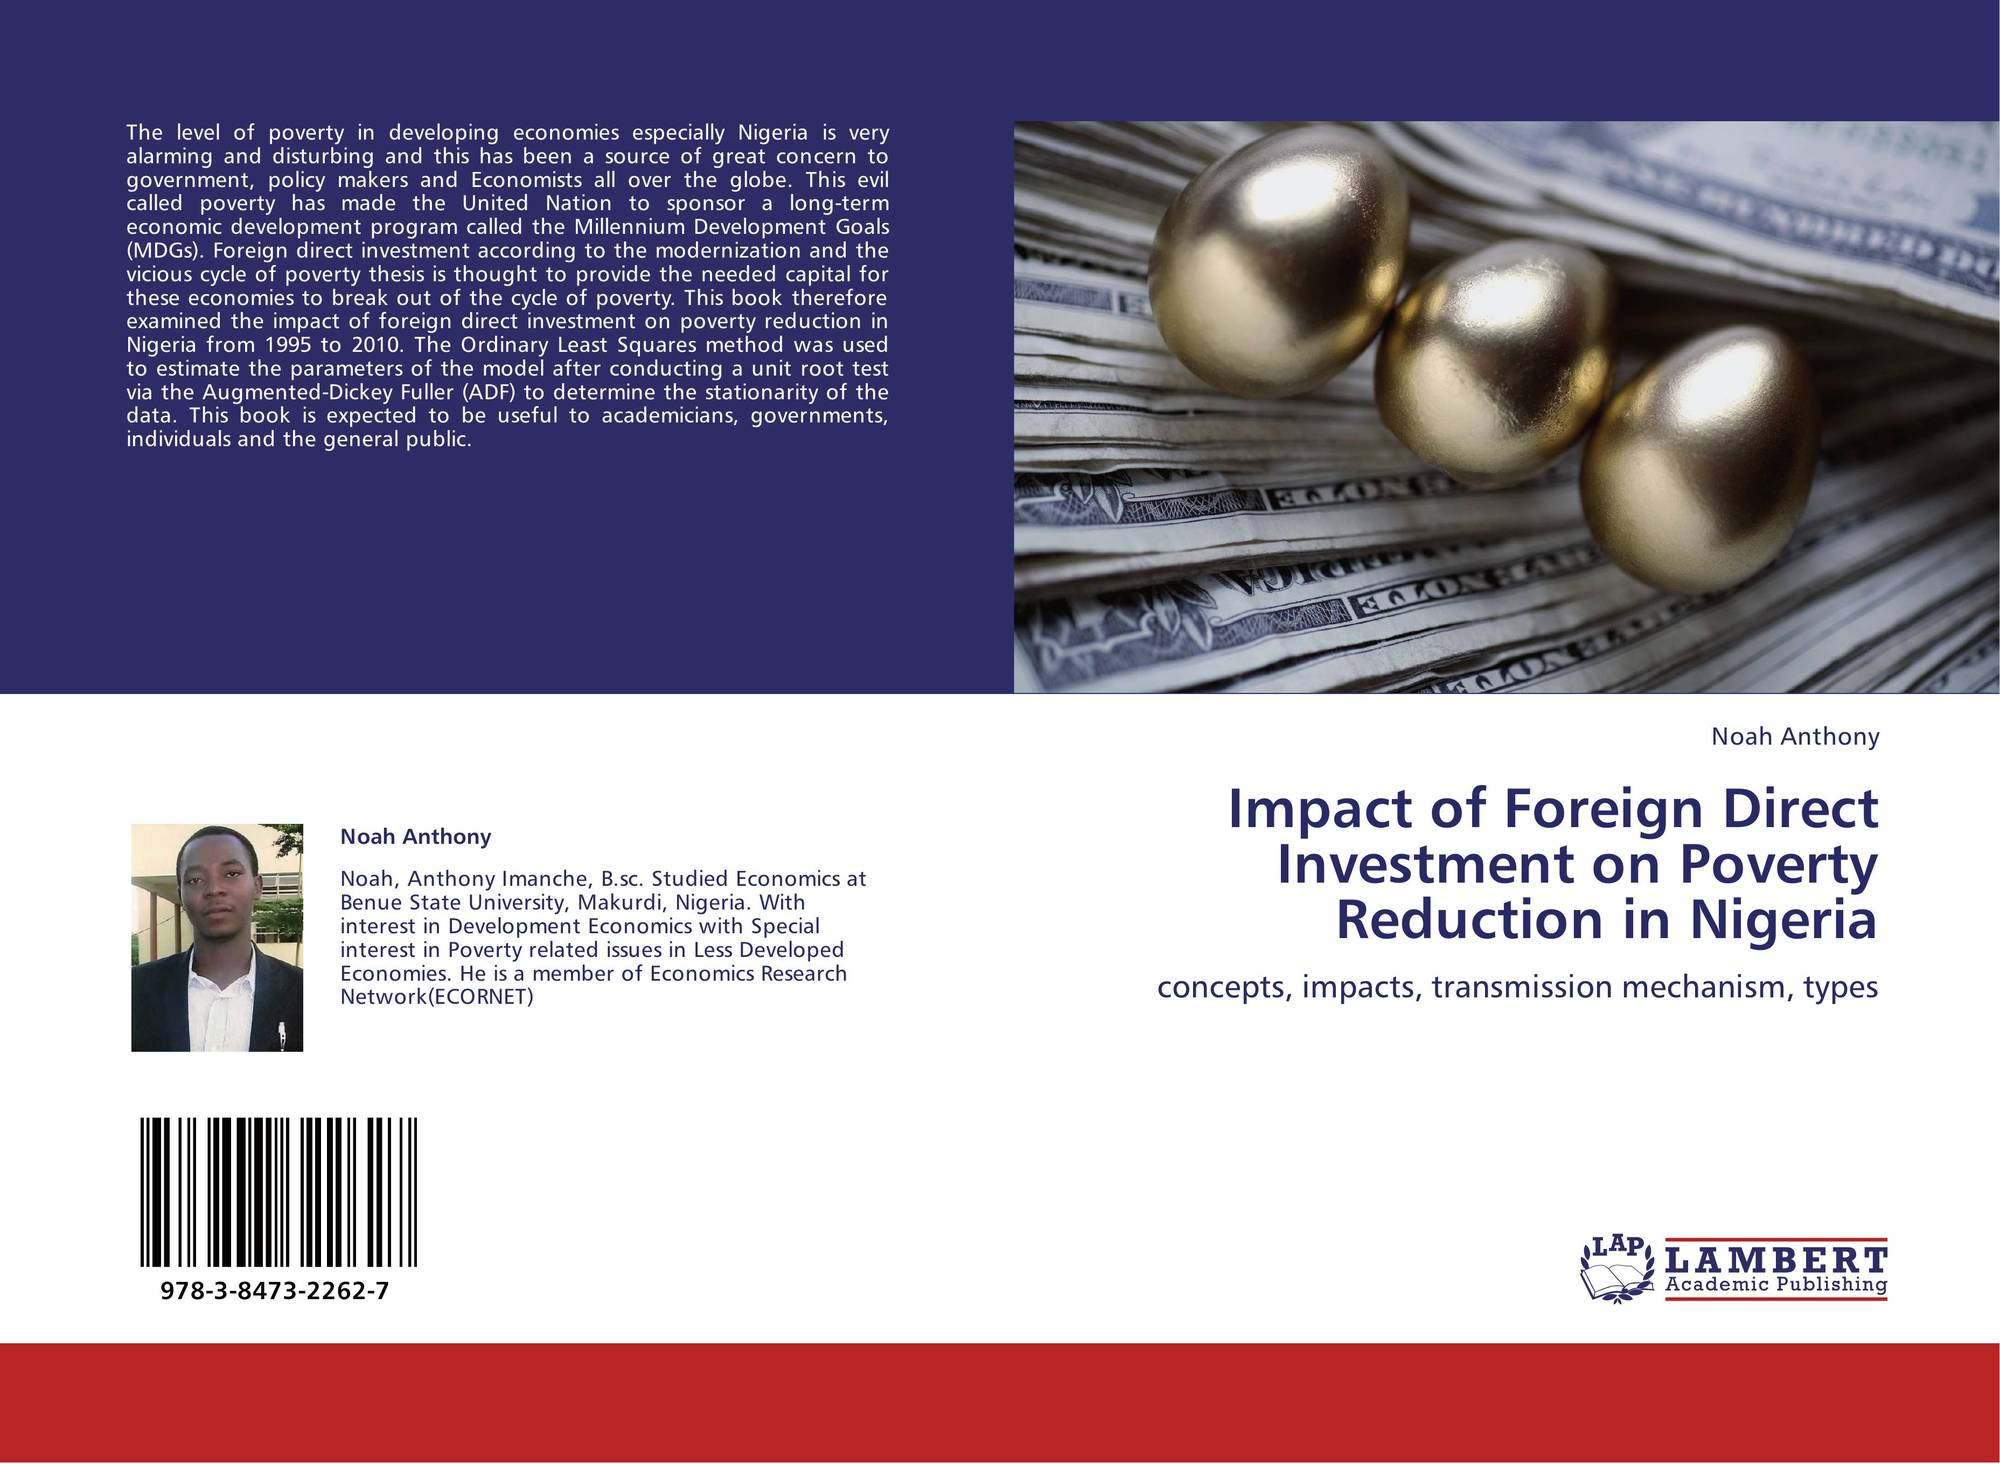 impact of fdi The study is to investigate the impact of foreign direct investment on economic growth in china during the period 1992-2003 the research is based on data indicators of level of gdp and fdi for china during this time period.